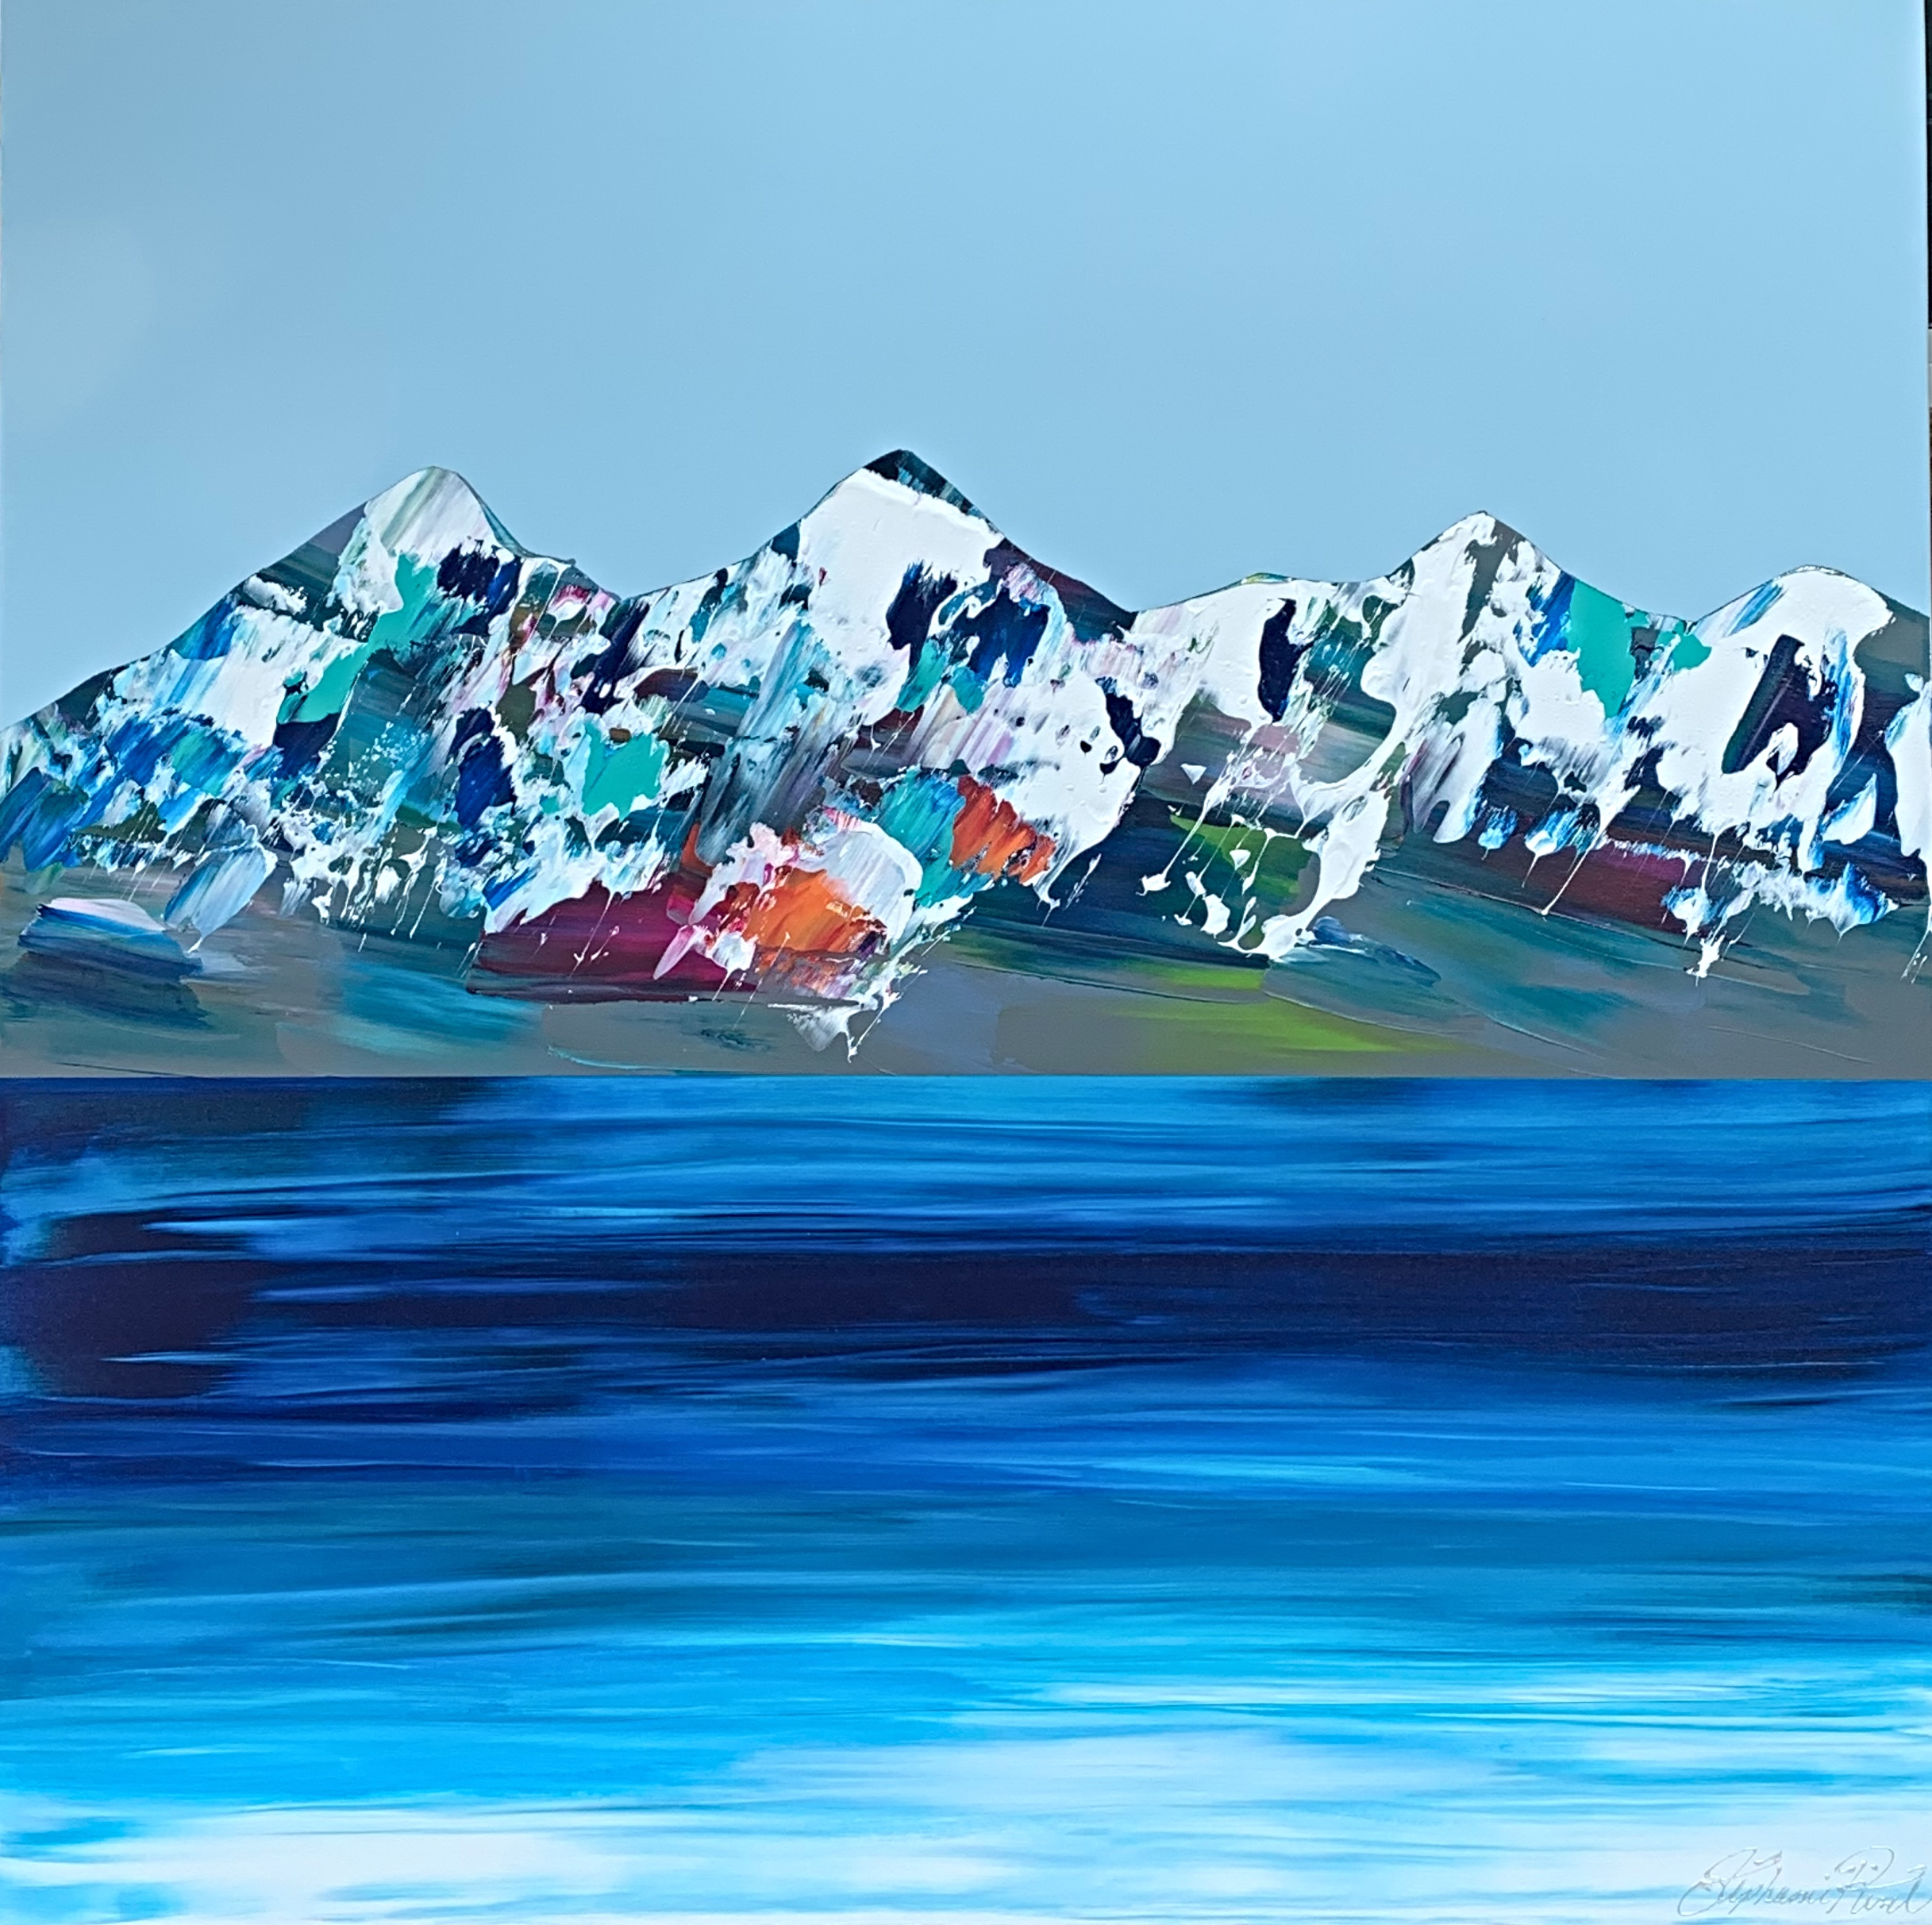 Rocheuses 721, acrylic landscape painting by Stephanie Rivet   Effusion Art Gallery + Cast Glass Studio, Invermere BC